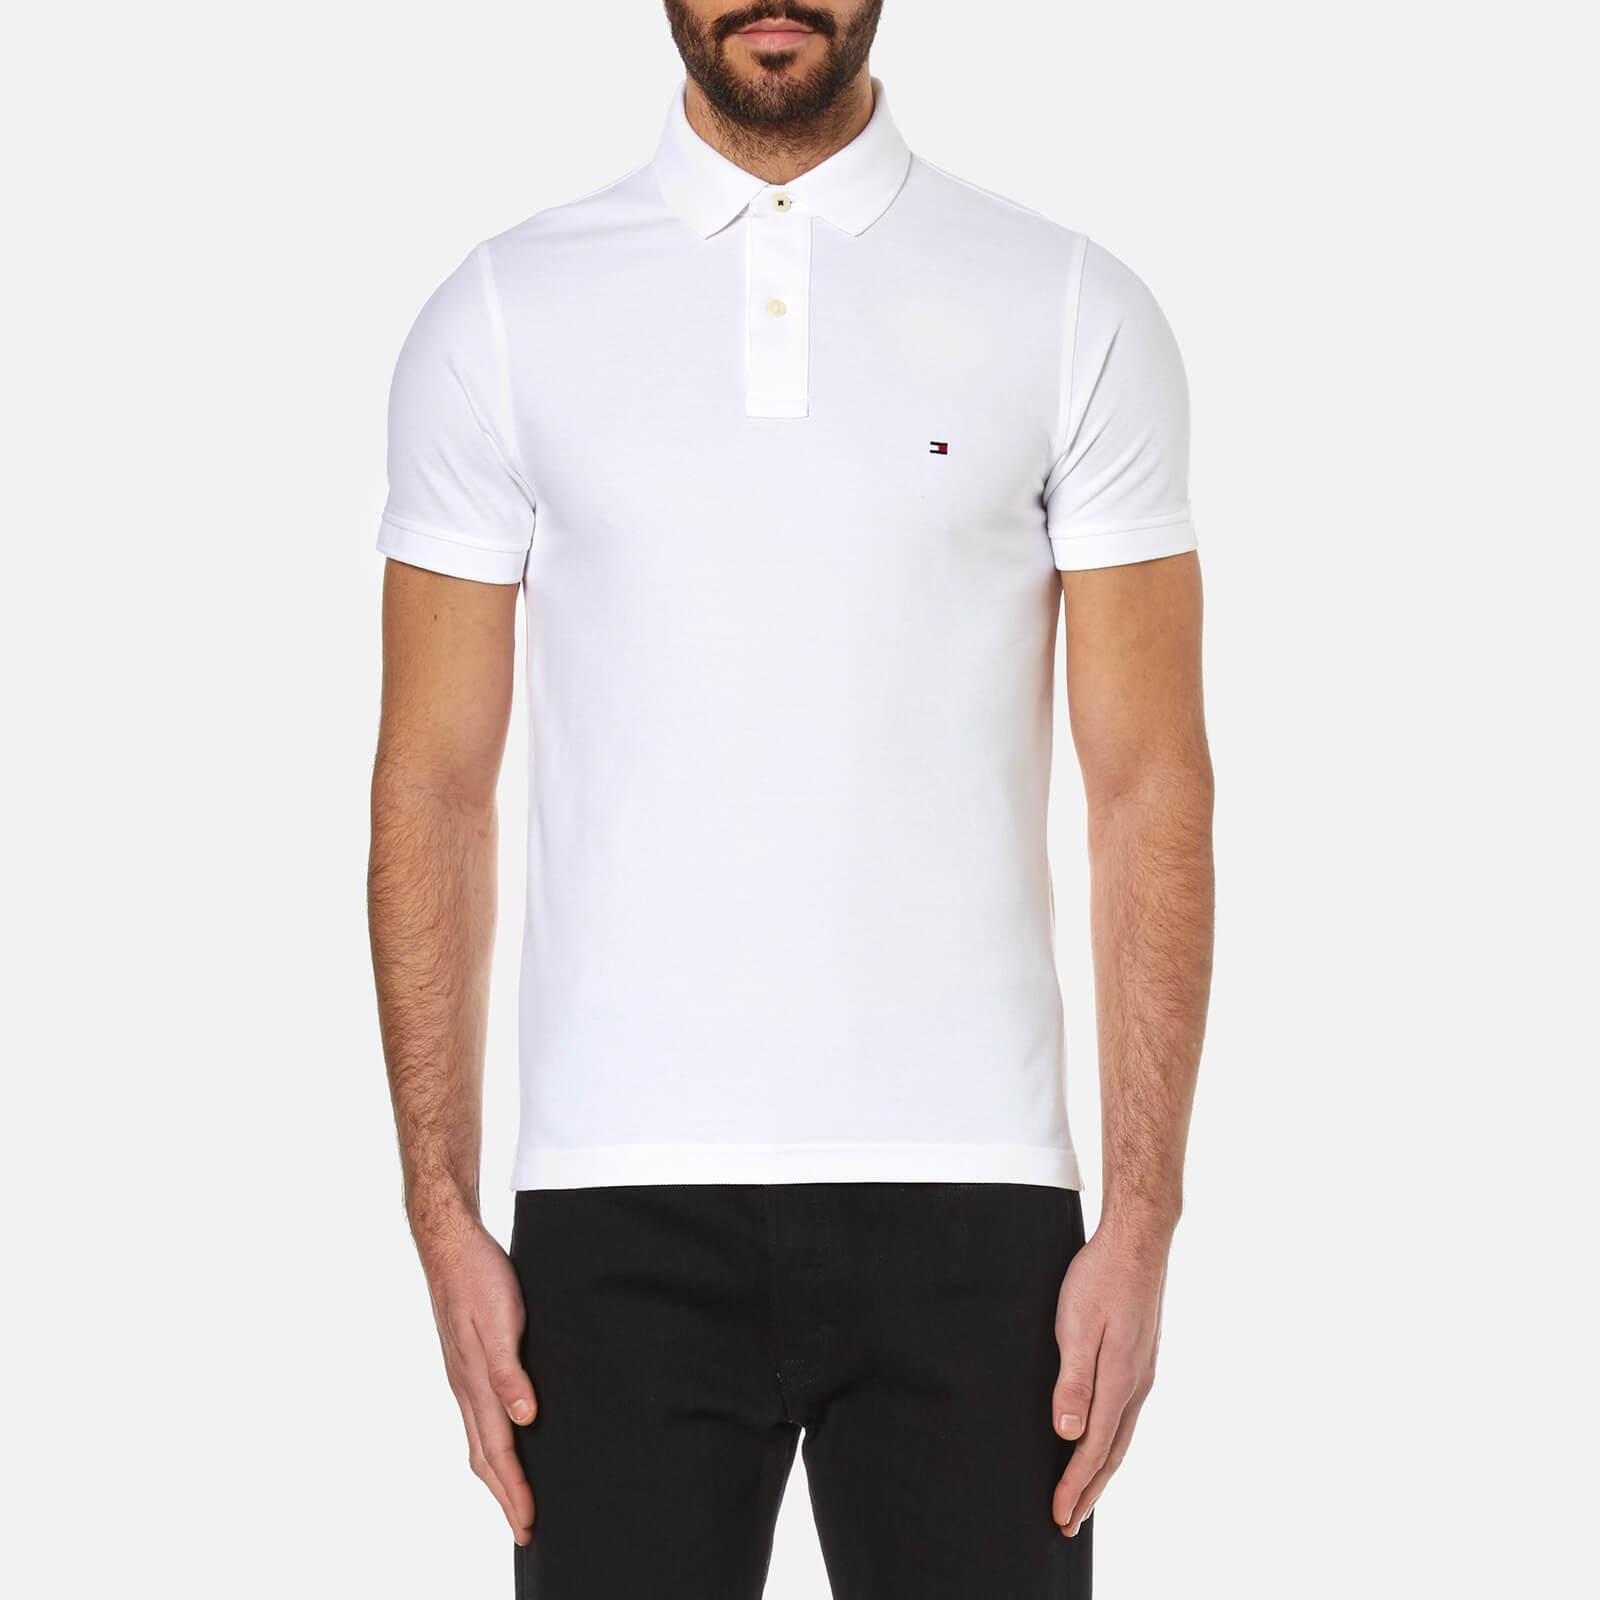 b6726a08 Tommy Hilfiger White Slim Fit Polo Shirt in White for Men - Lyst